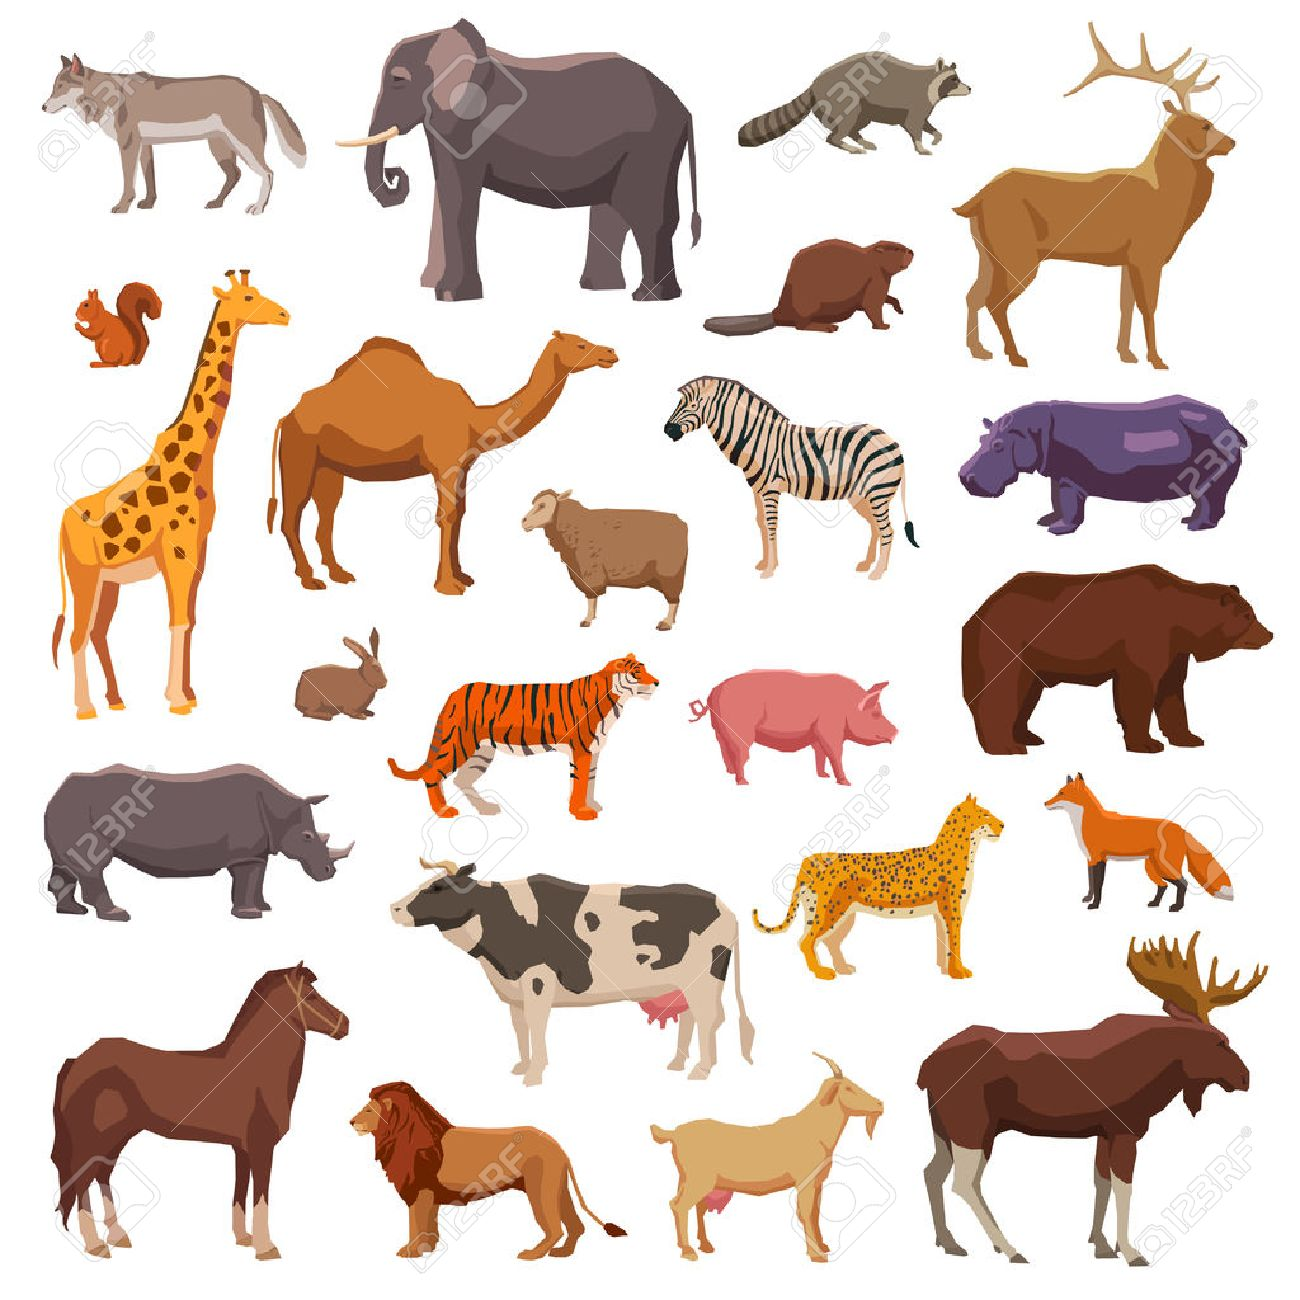 Big wild domestic and farm animals decorative icons set isolated vector illustration Stock Vector - 43210277